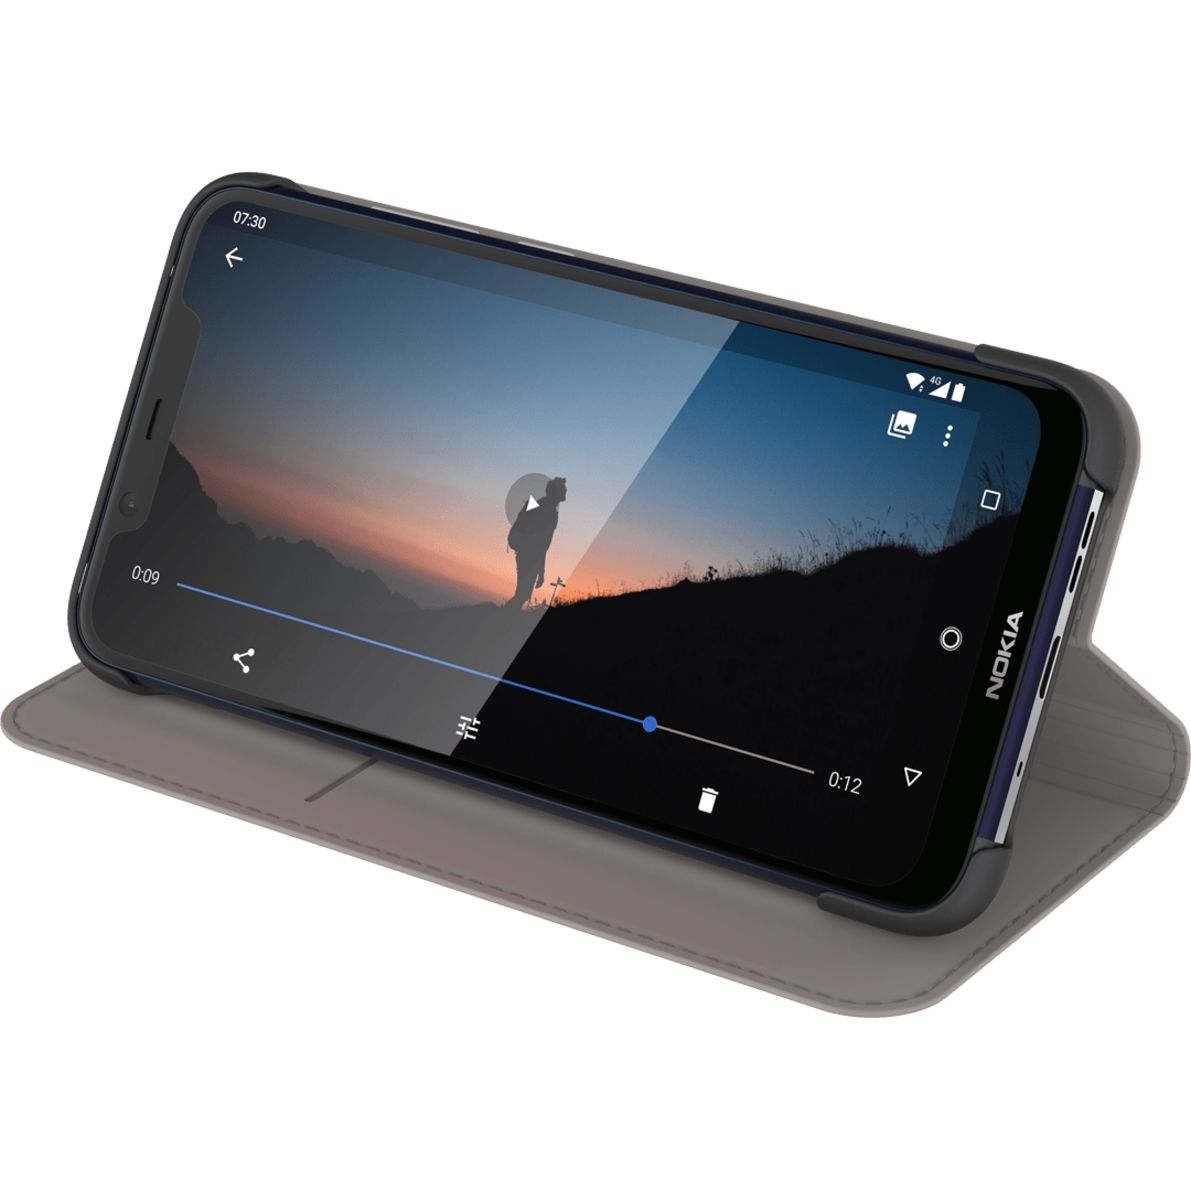 promo code 71a77 901e6 Nokia Entertainment Flip Cover | Phone case with stand | Nokia phones